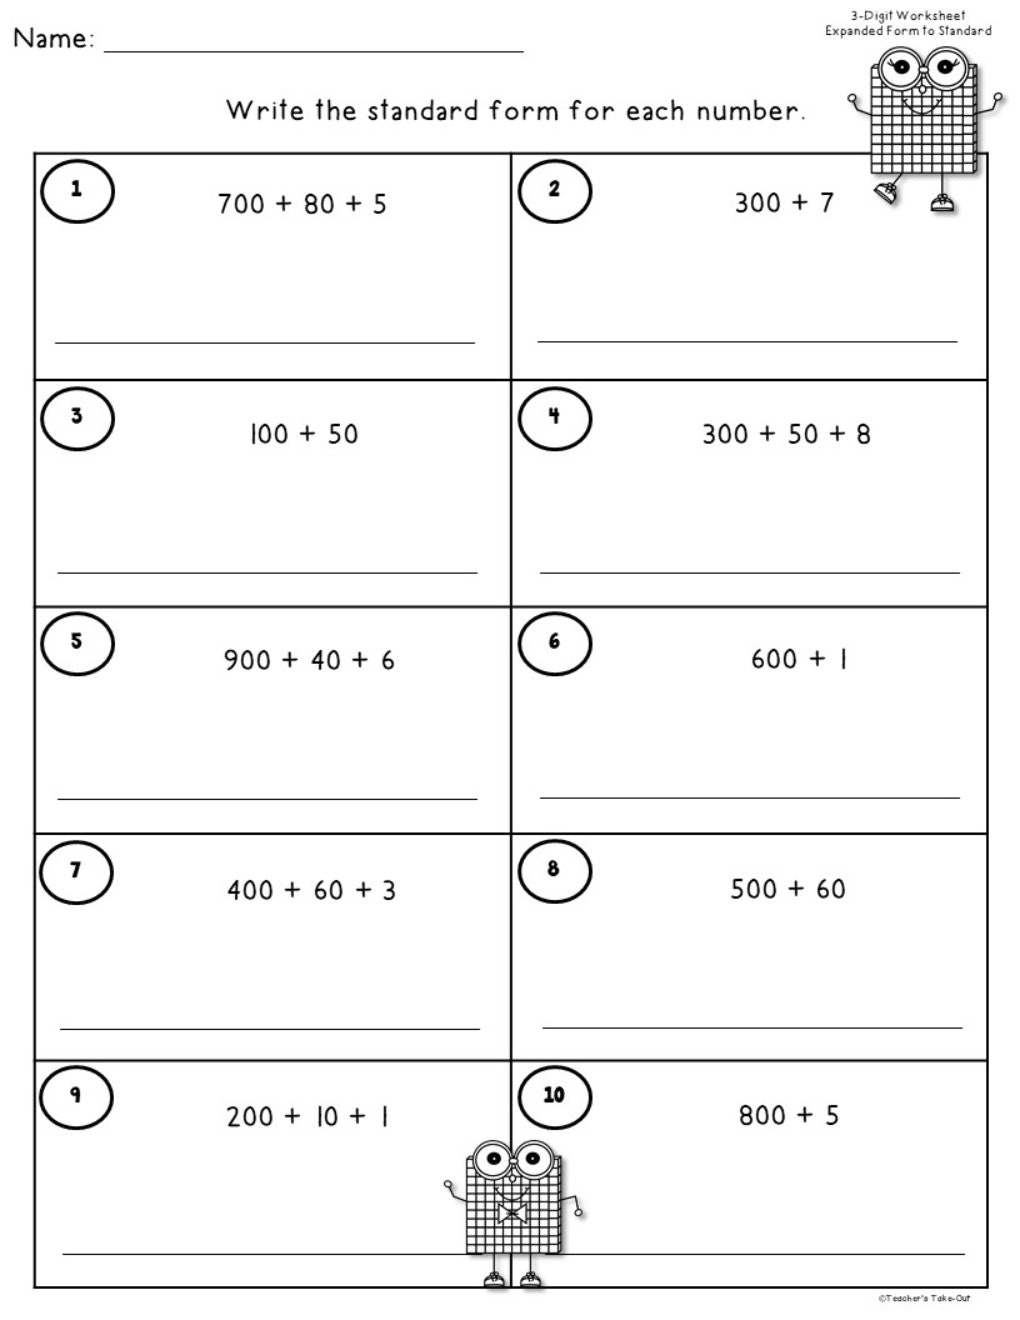 expanded form 4 408 730  10 Digit Place Value using Standard, Expanded Form, and Word Name